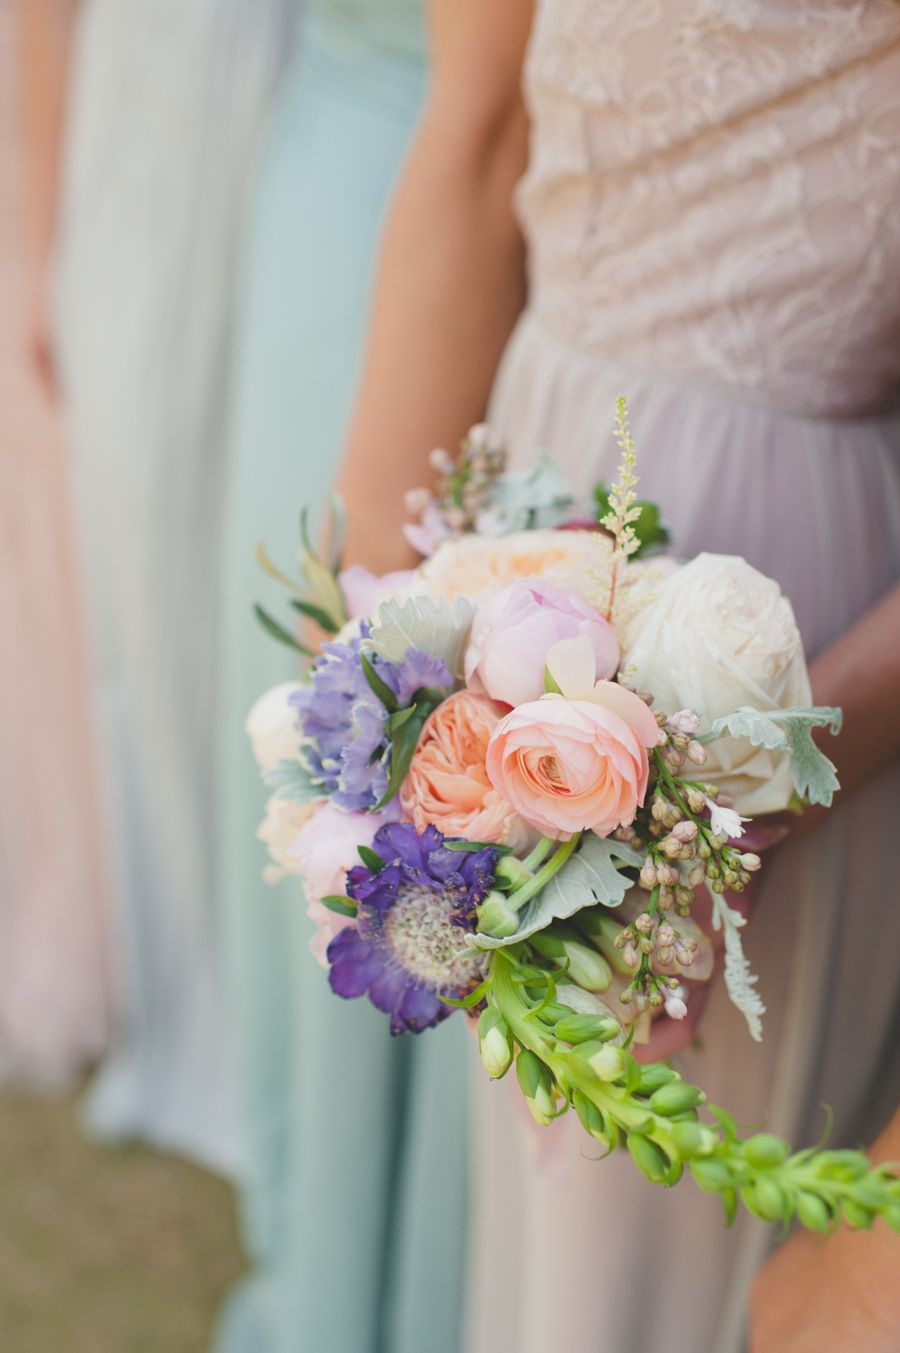 Photography: Spindle Photography - spindlephotography.com/  Read More: http://www.stylemepretty.com/2014/06/25/summer-wedding-inspiration-with-pewter-accents/